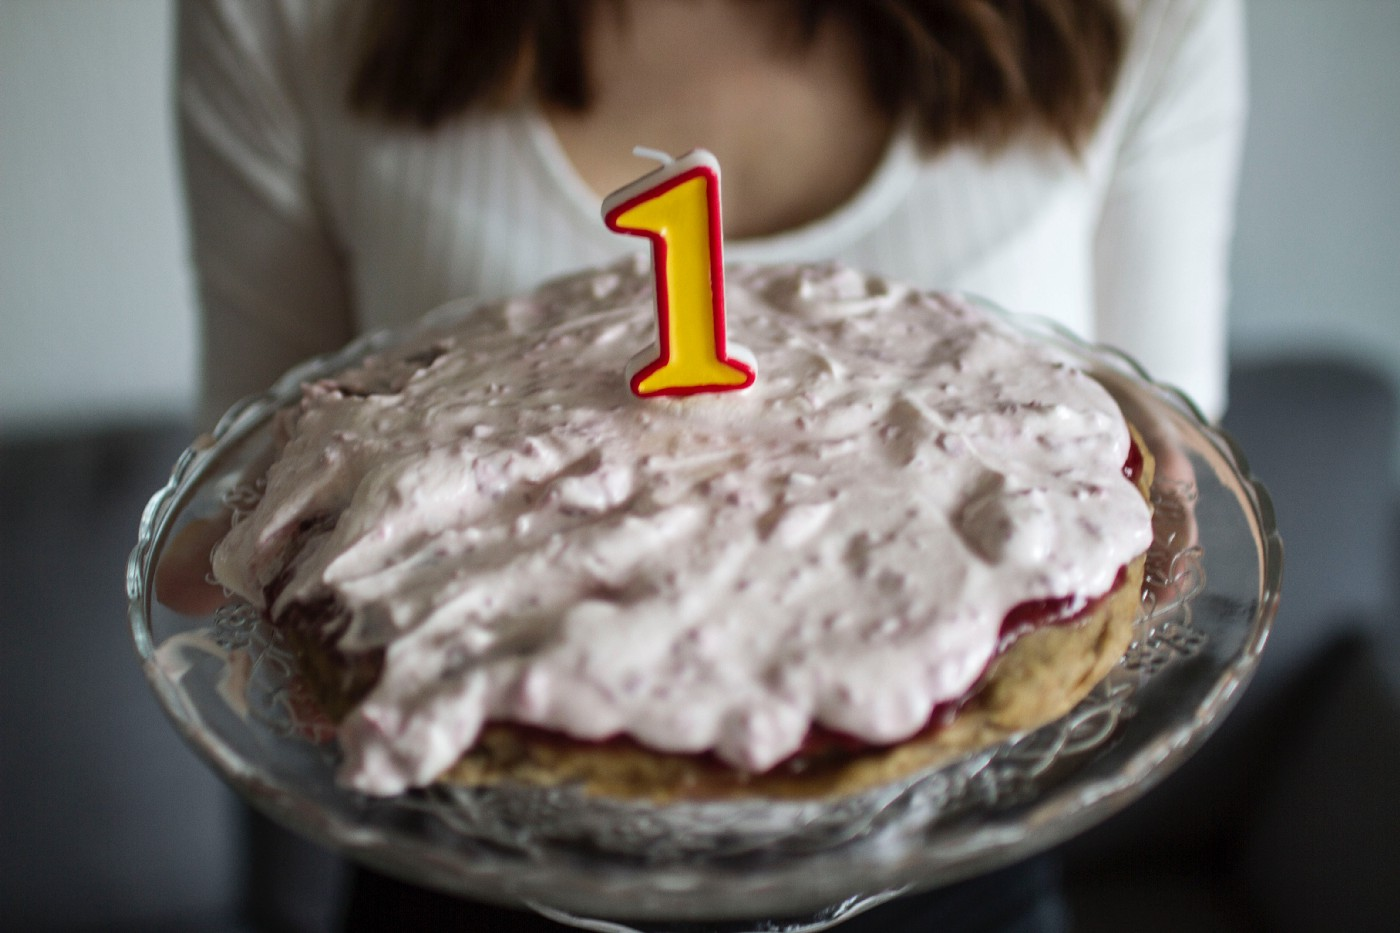 Birthday cake with candle in the form of the number one